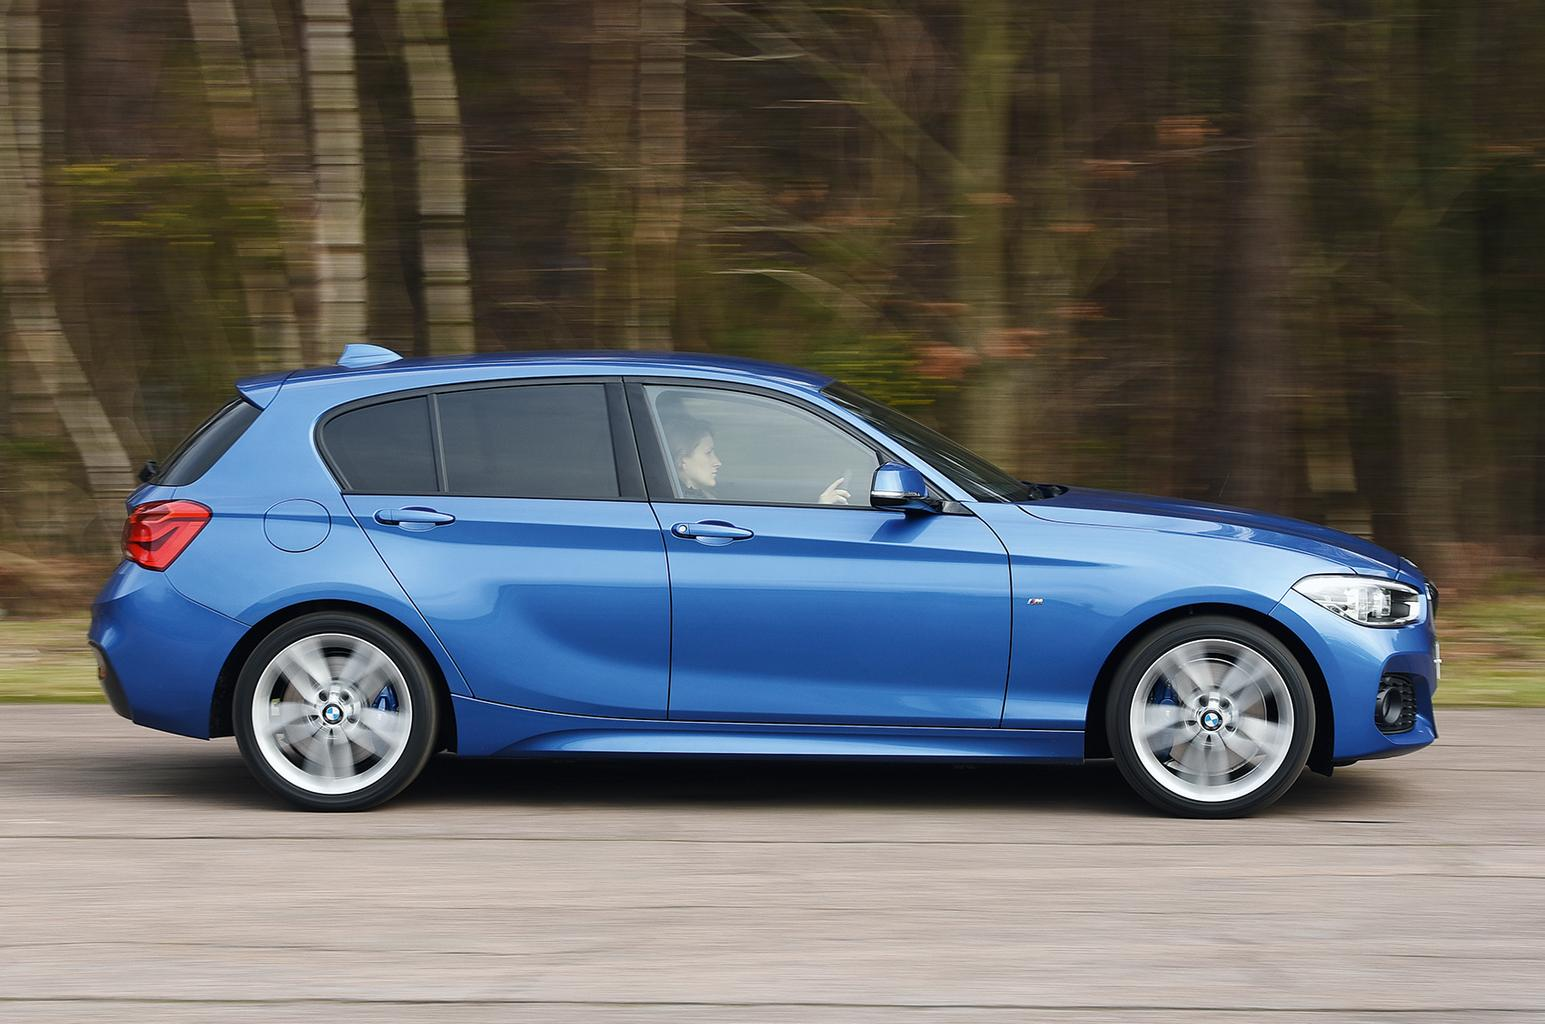 Audi A3 Sportback vs BMW 1 Series vs Infiniti Q30: What will they cost?